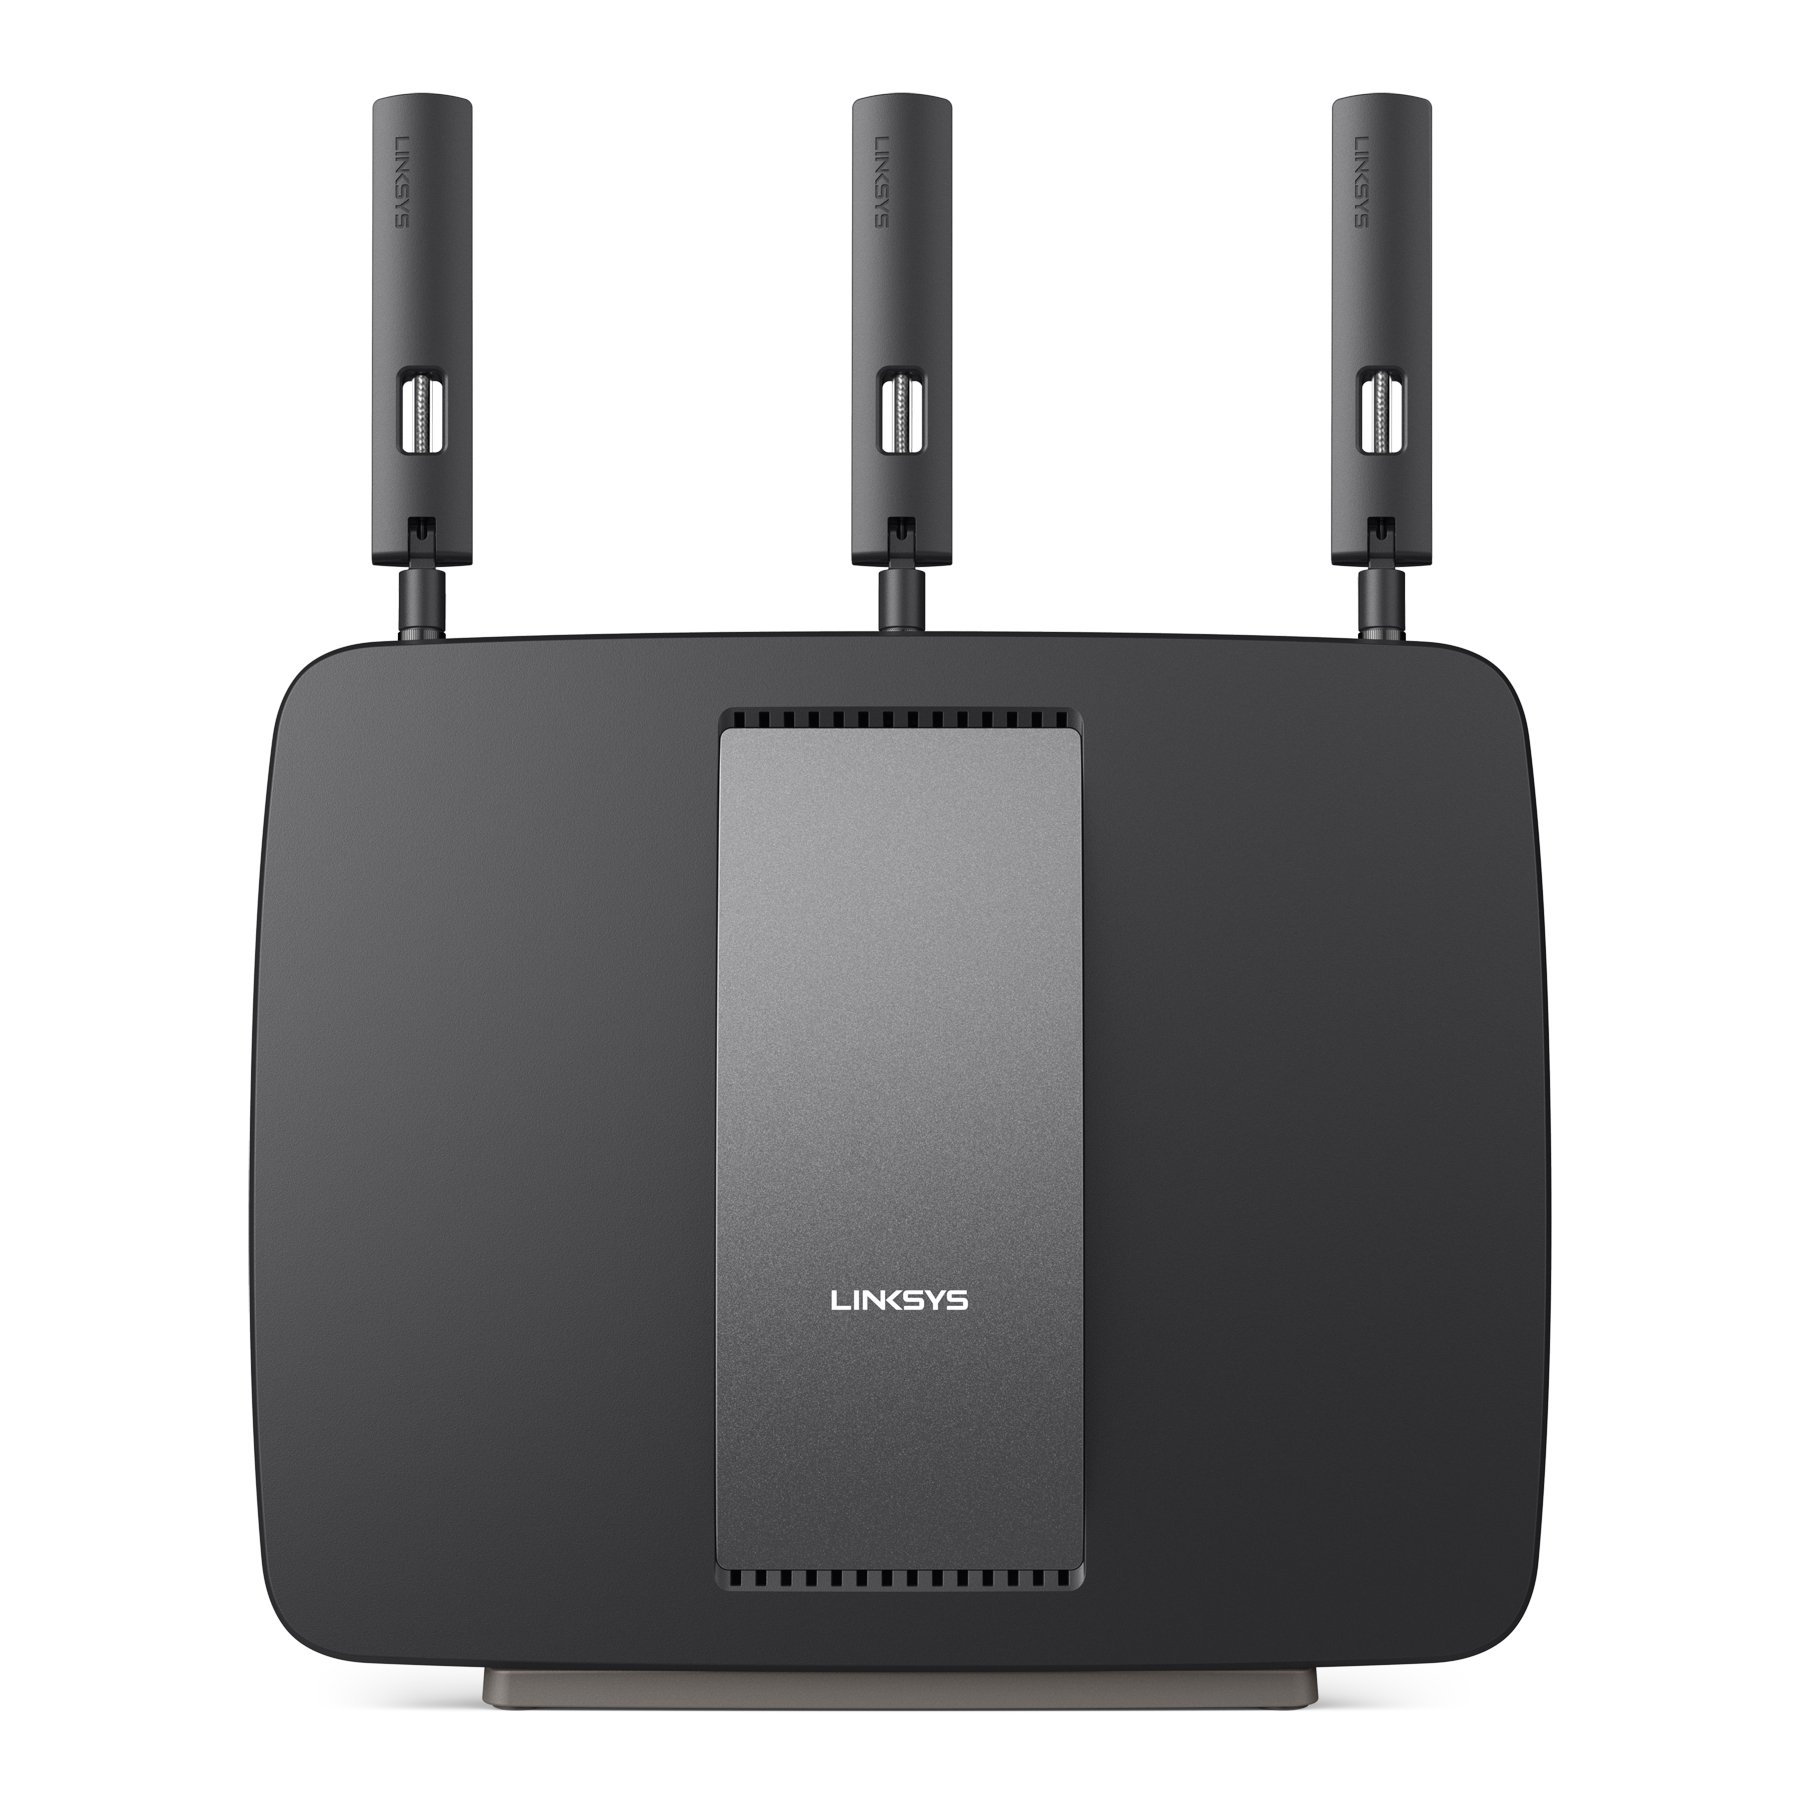 Linksys AC3200 Tri-Band Smart Wi-Fi Router with Gigabit and USB, Designed for Device-Heavy Homes, Smart Wi-Fi App Enabled to Control Your Network from Anywhere (EA9200)